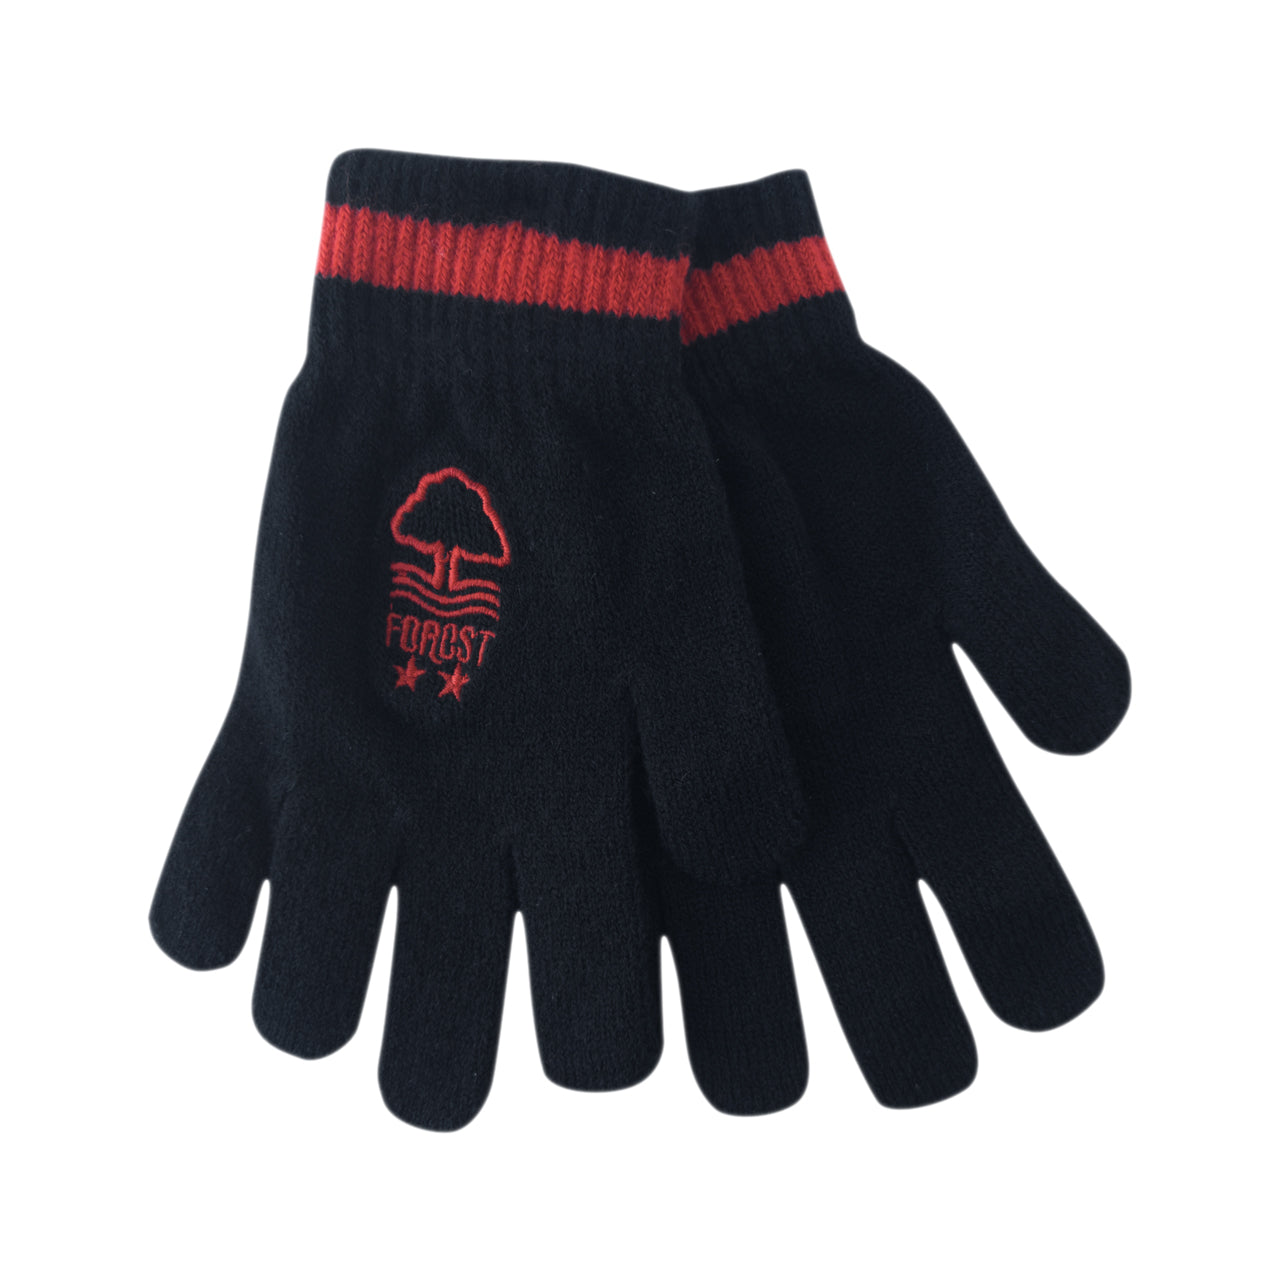 NFFC Black/Red Junior Knitted Gloves